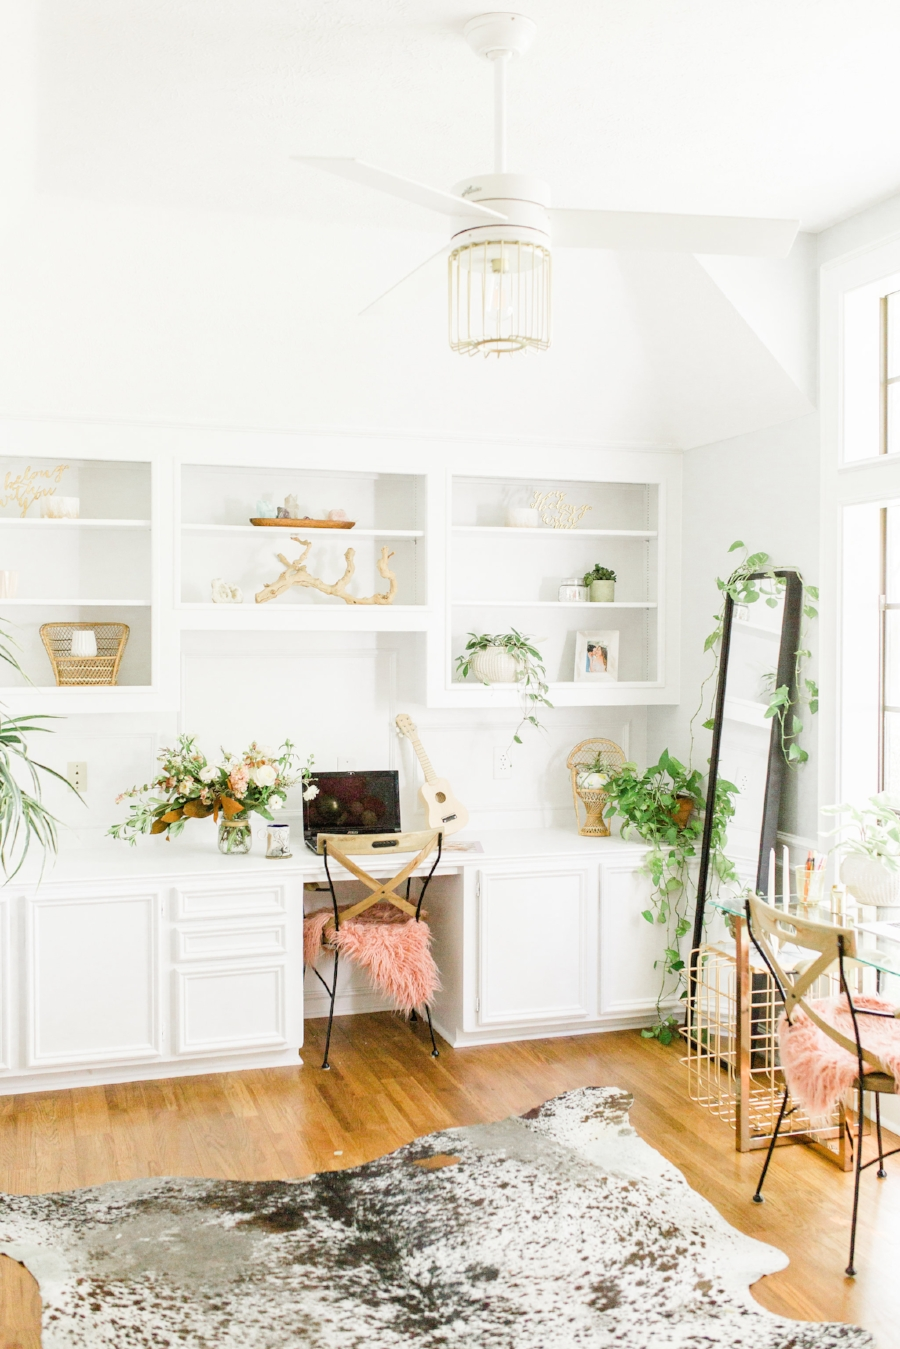 Home Decorating Tips For Beginners Buy This Not That Joyfully Green